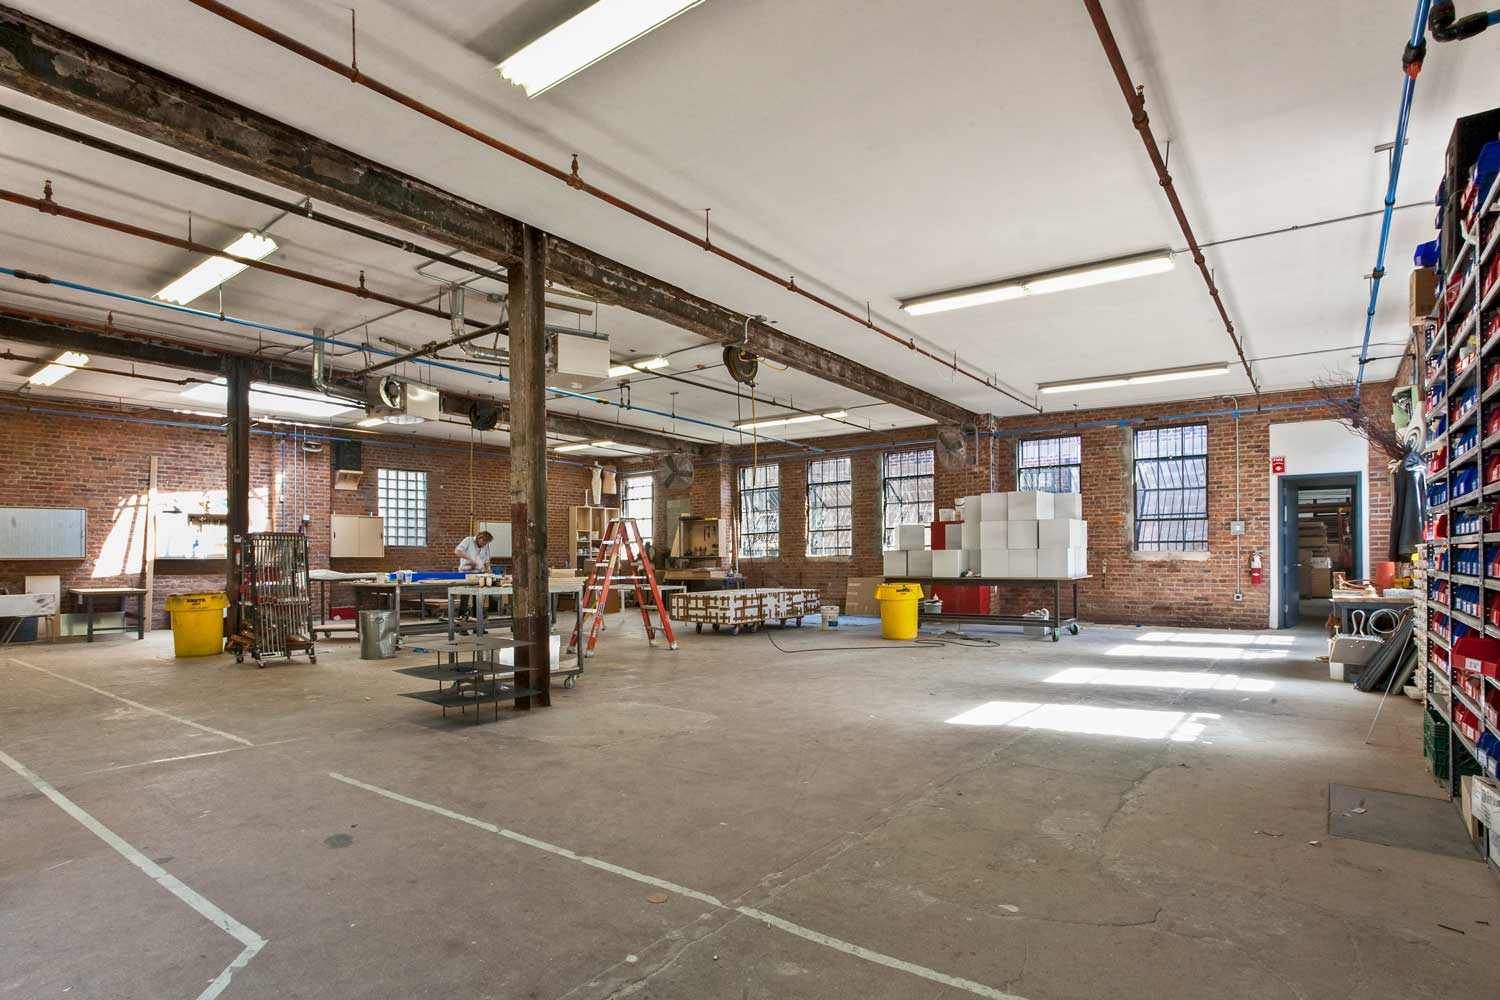 OCV Architects intervened minimally into this rare historic NYC light manufacturing building.